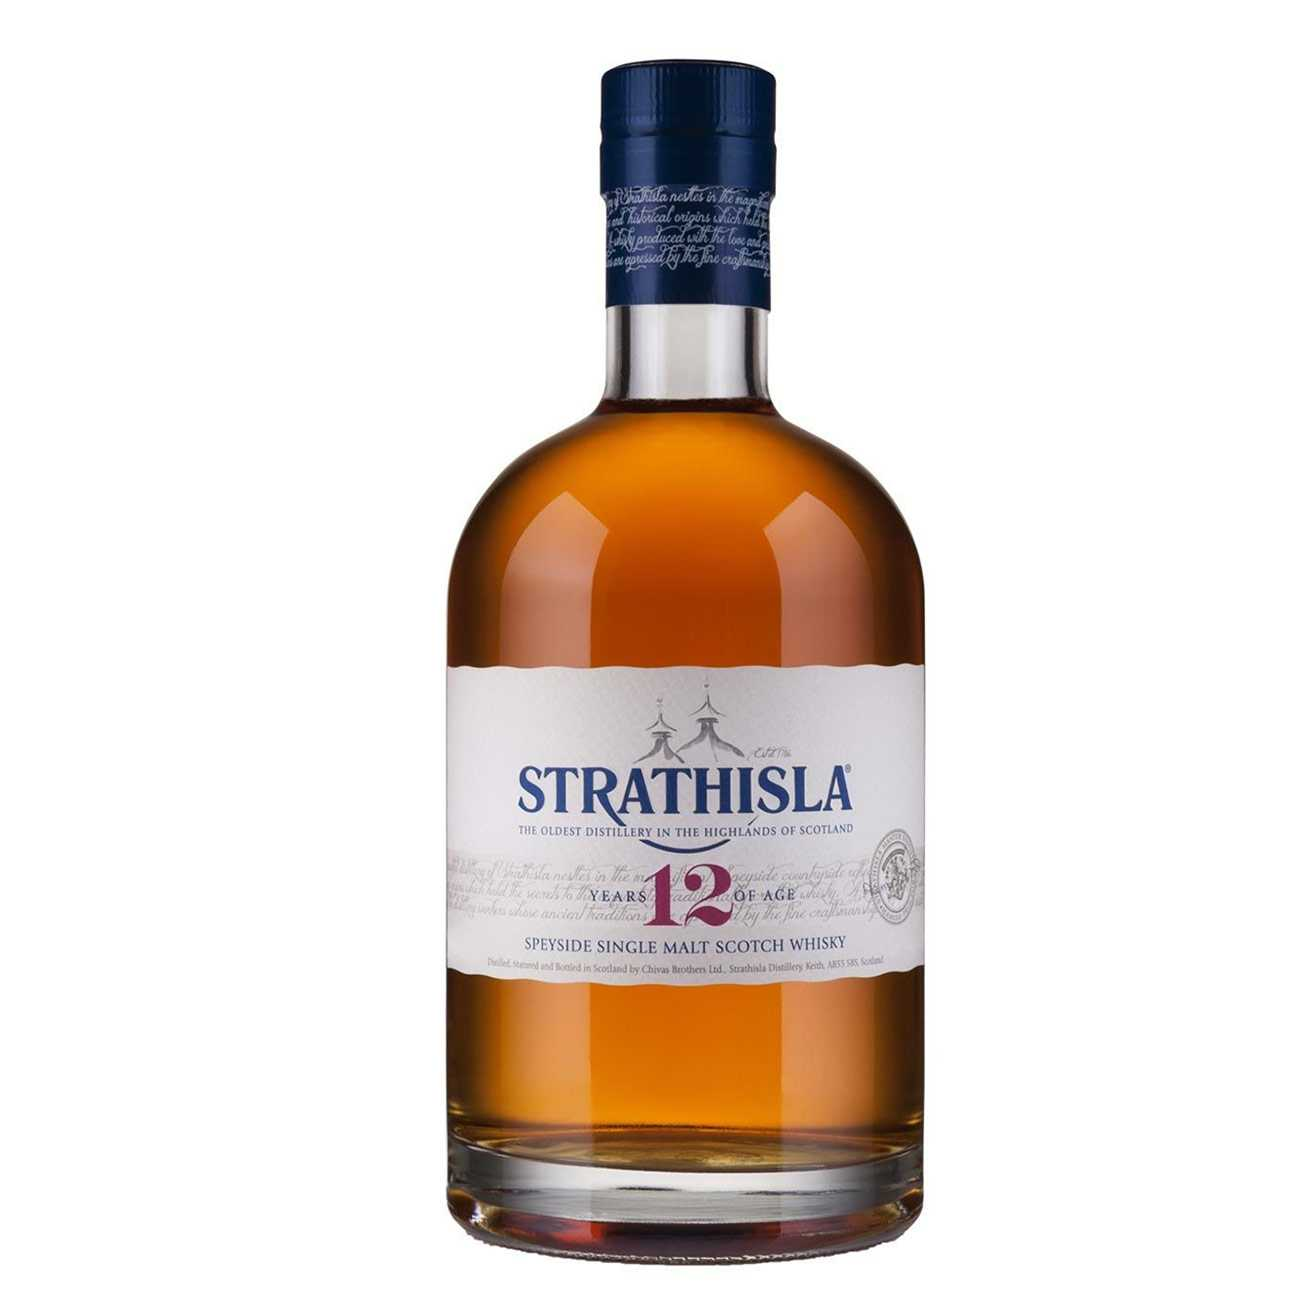 Whisky scotian, PURE HIGHLAND MALT SCOTCH 12 Y 1000 ML, Strathisla